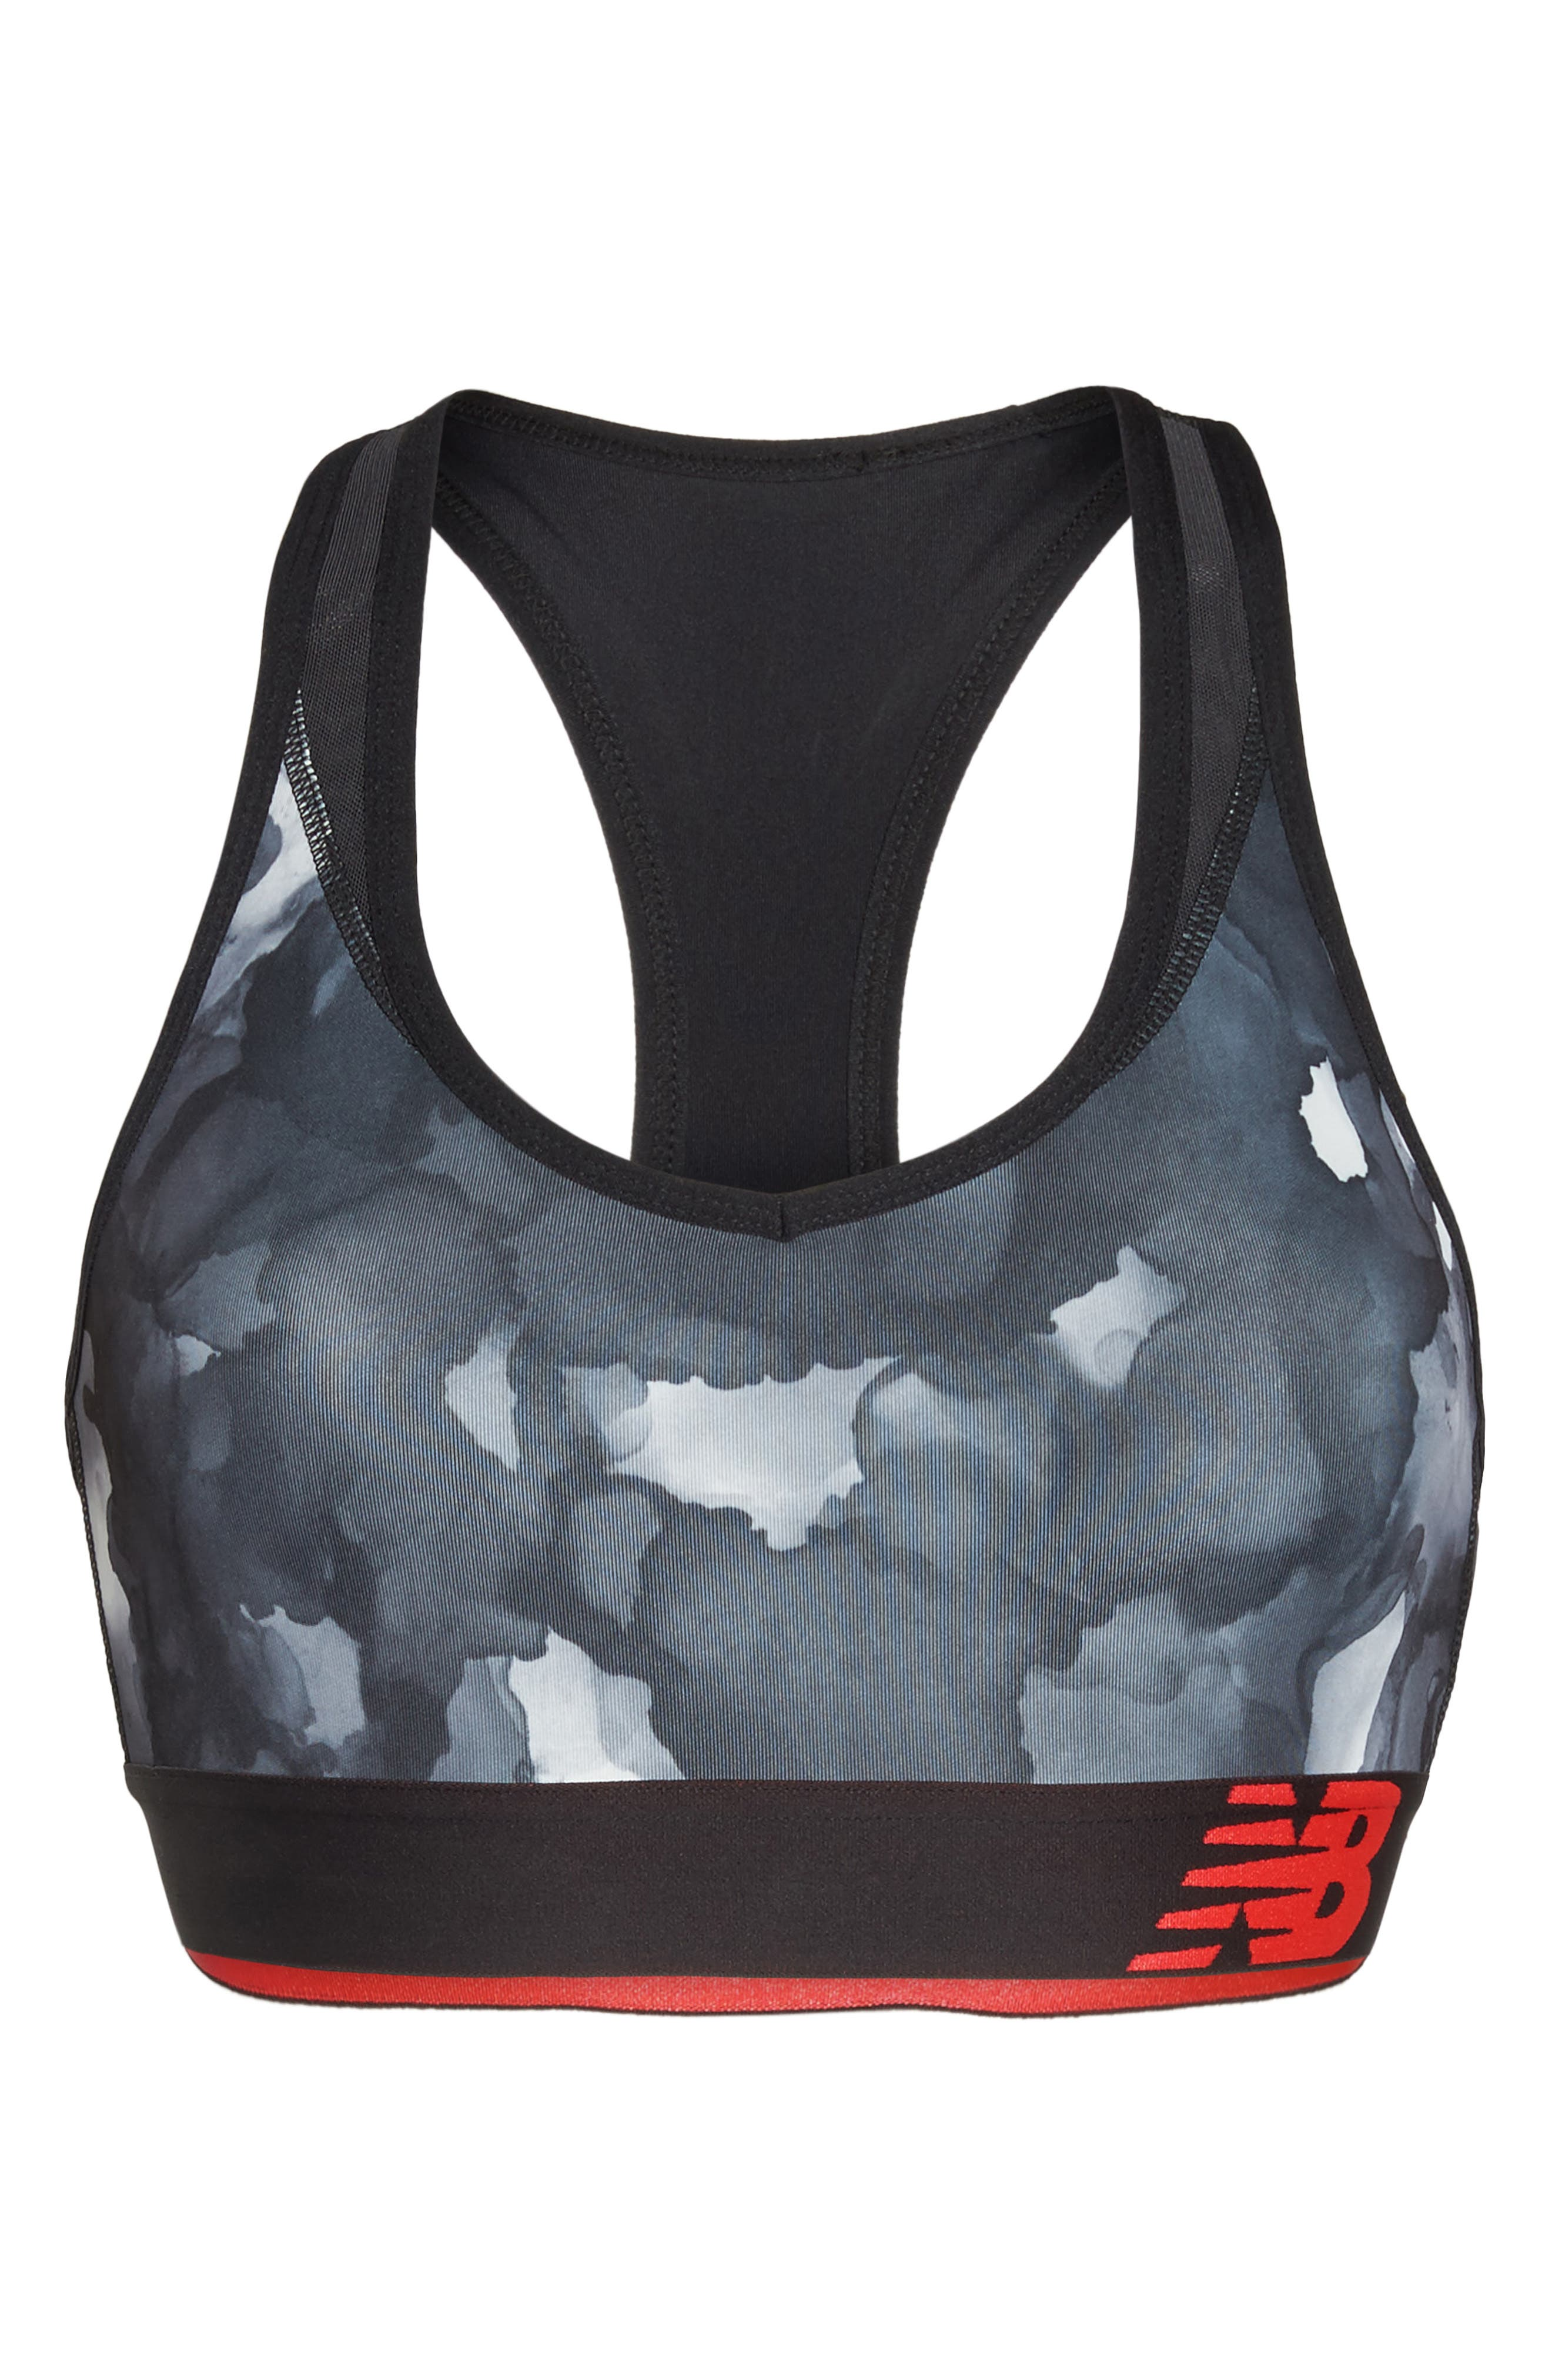 Pace Print Sports Bra,                             Alternate thumbnail 7, color,                             035